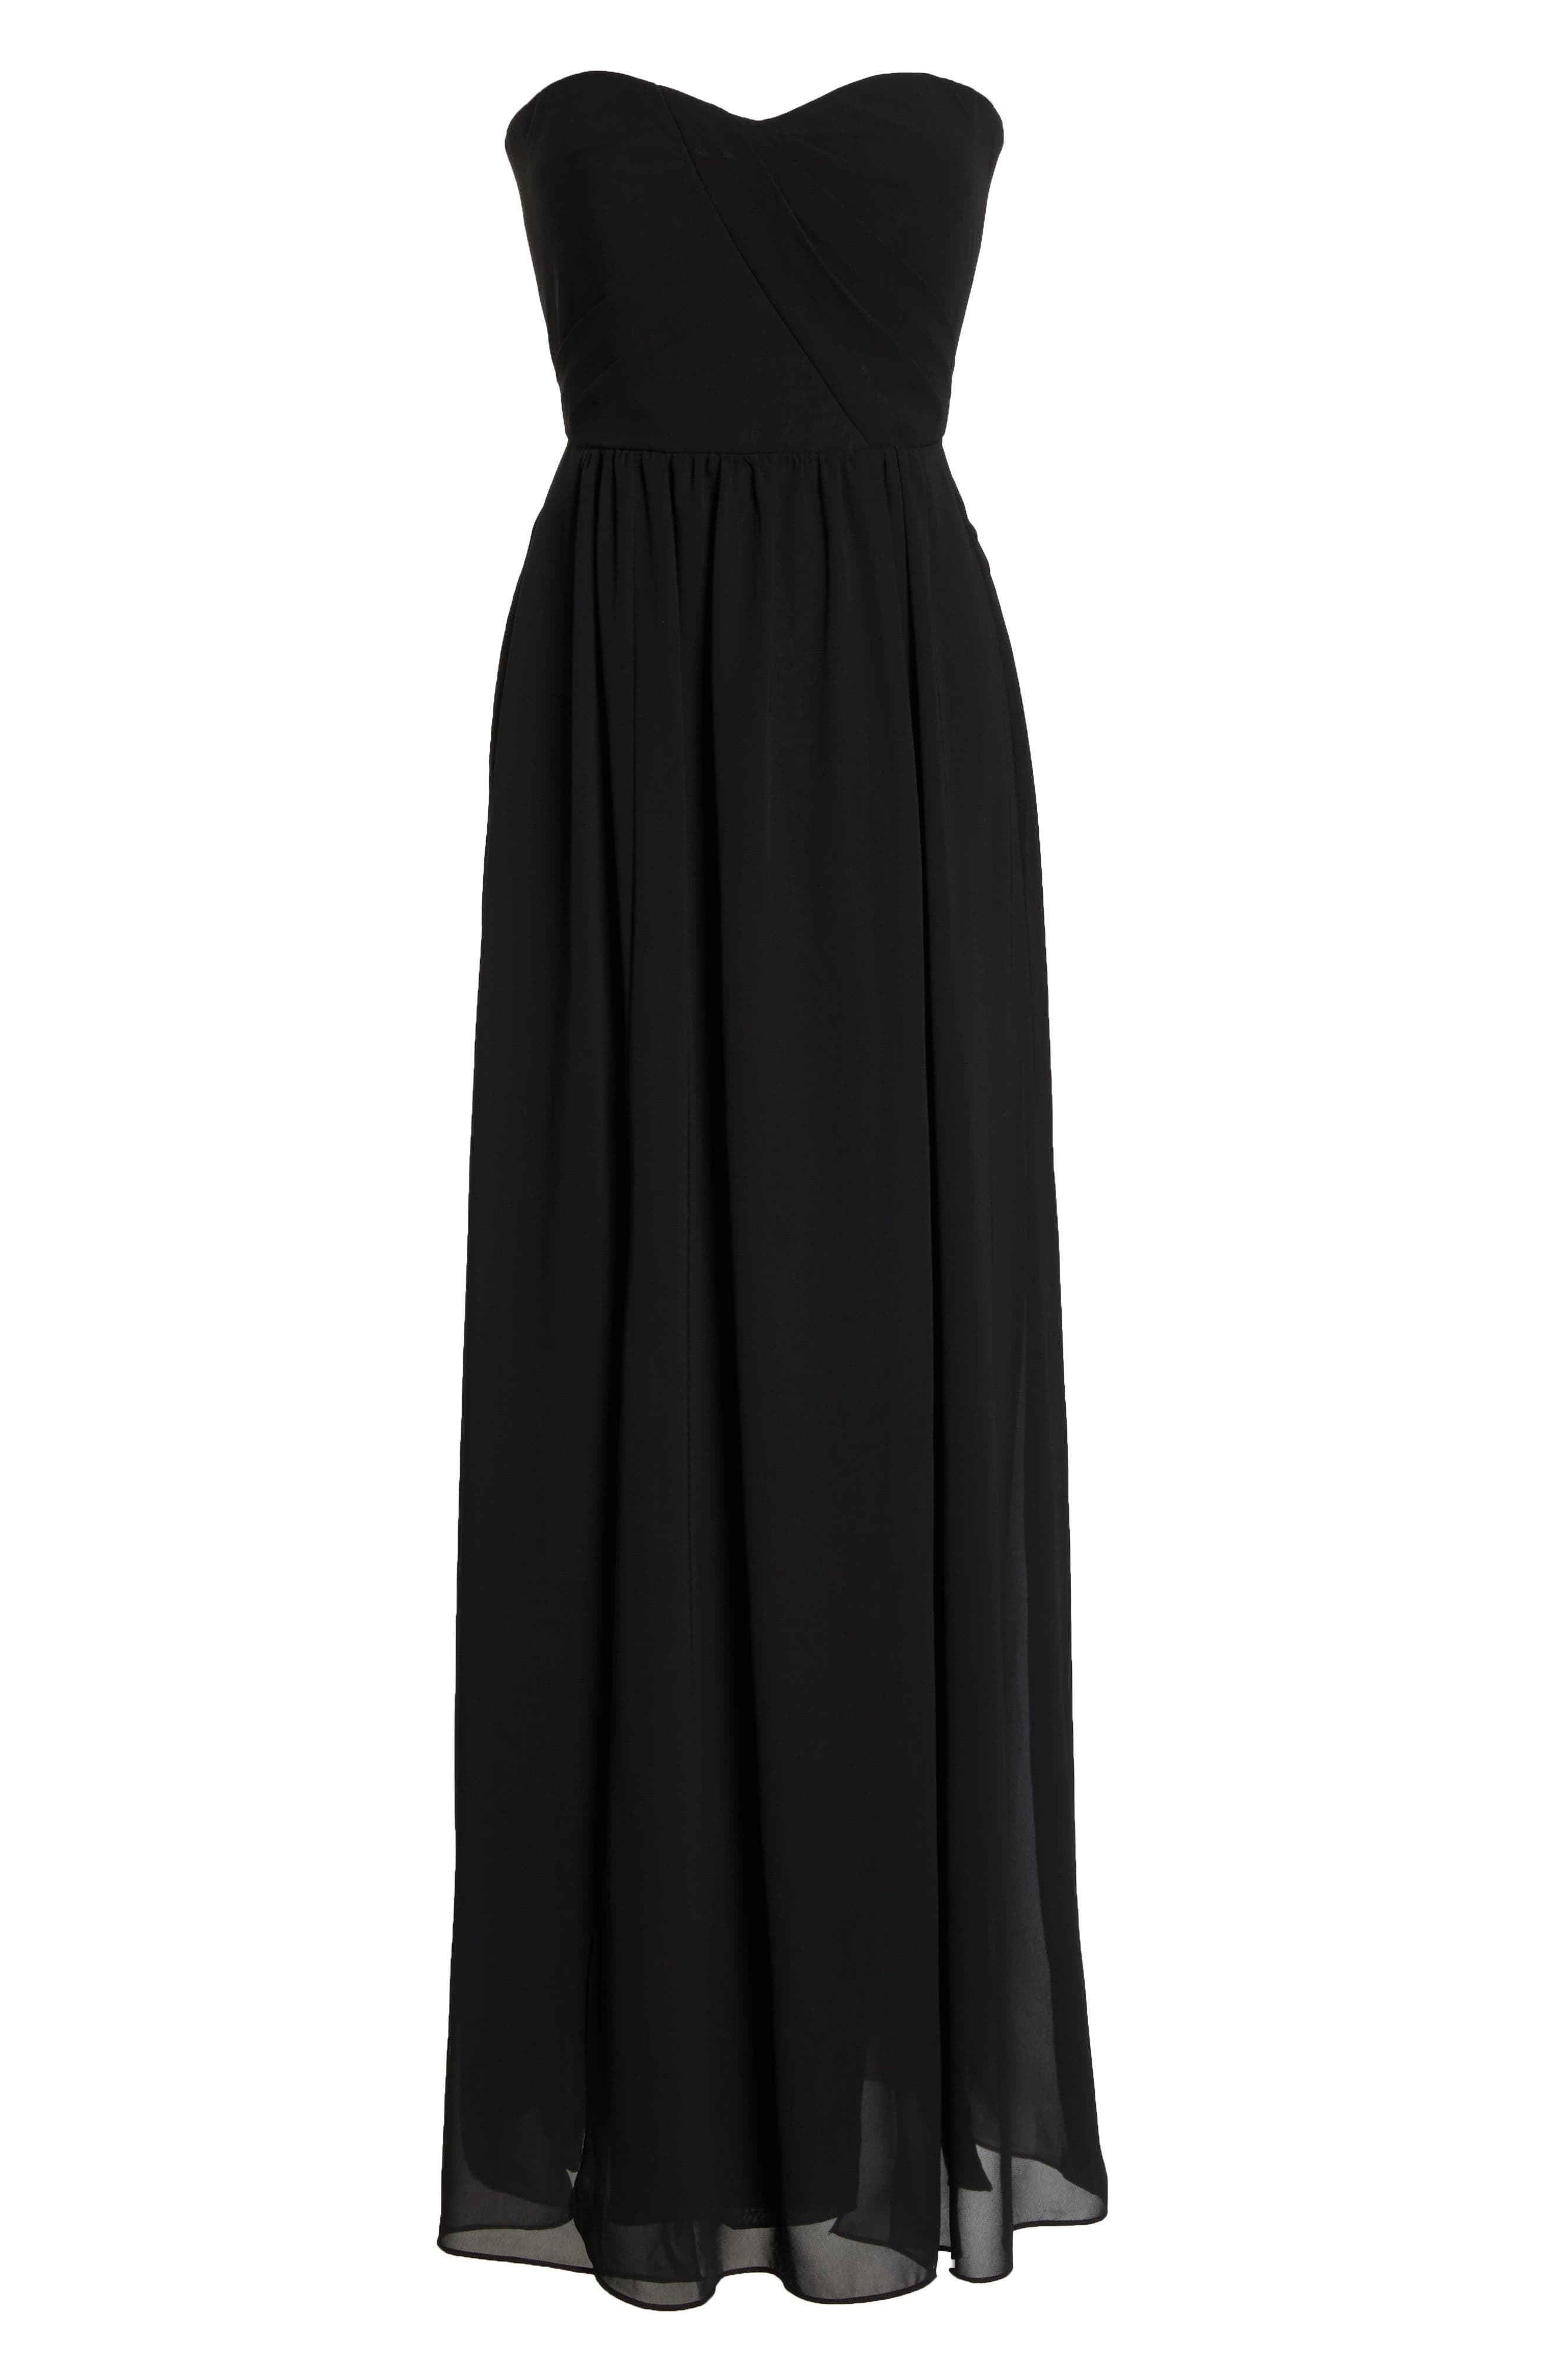 SOCIAL BRIDESMAIDS, Strapless Georgette Gown, Alternate thumbnail 3, color, BLACK